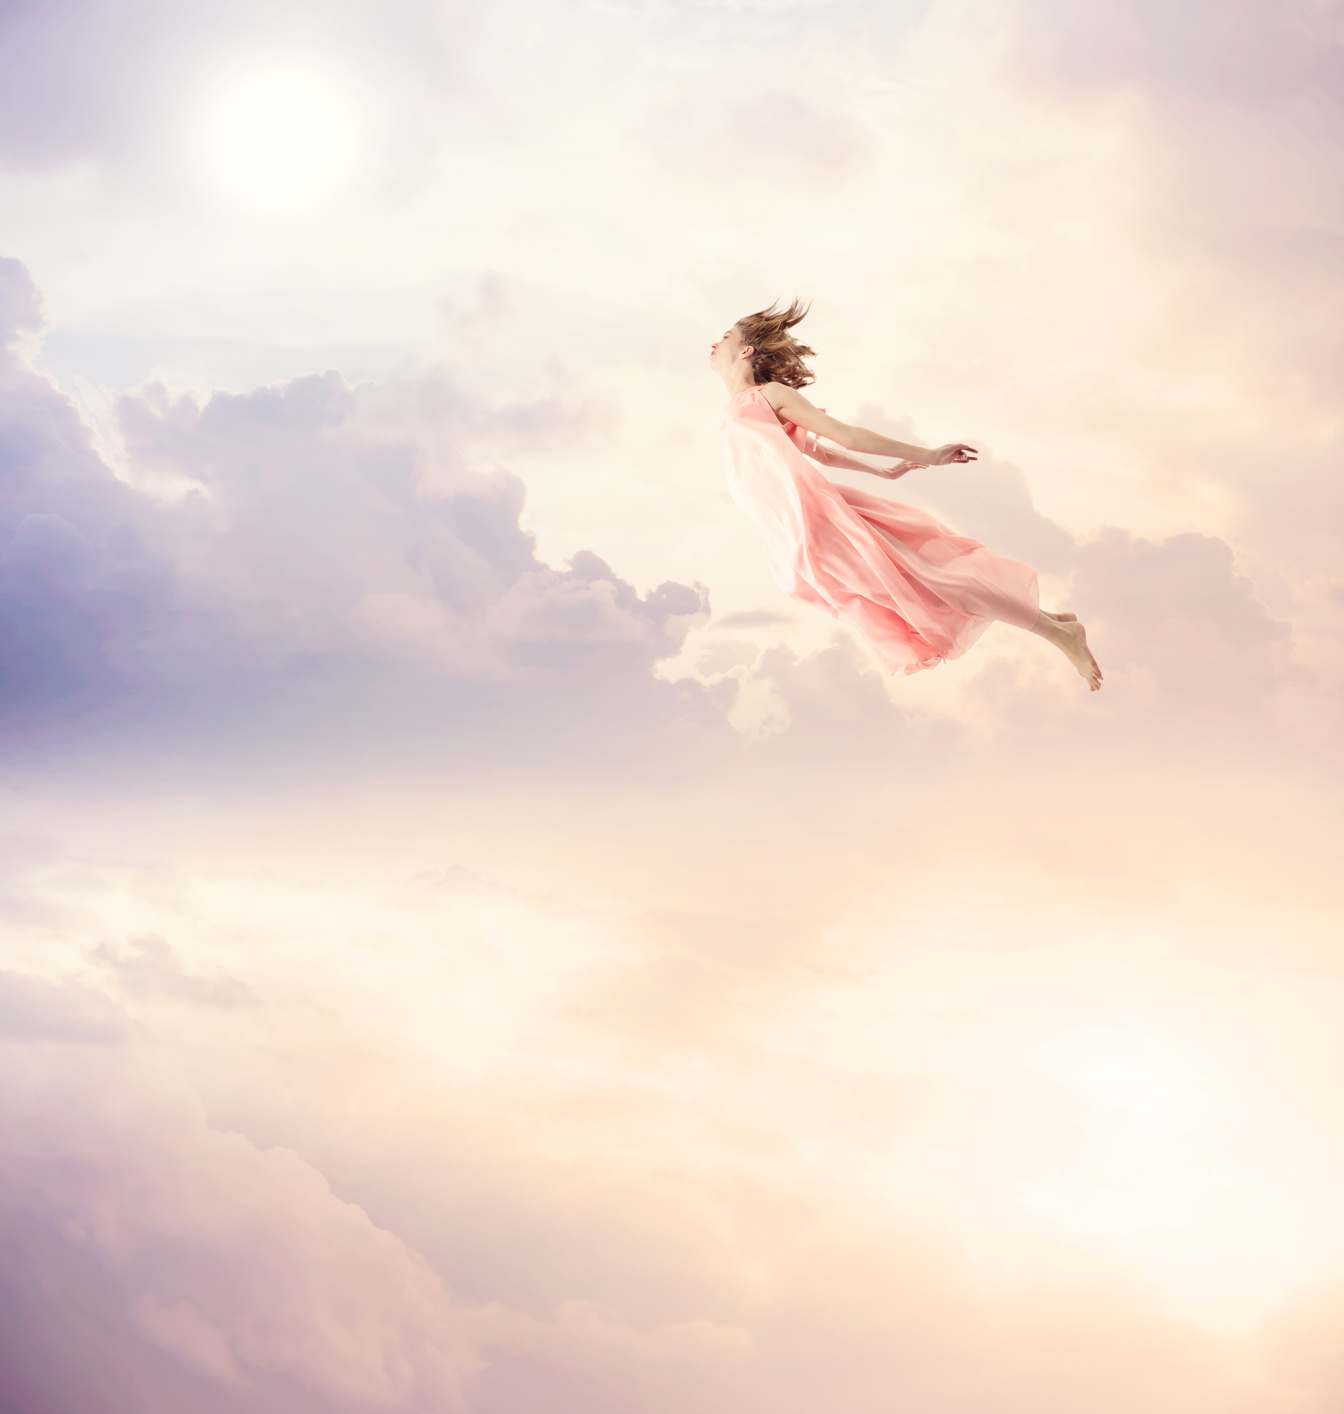 Awakening Pains: How to Embrace New Frontiers of Growth